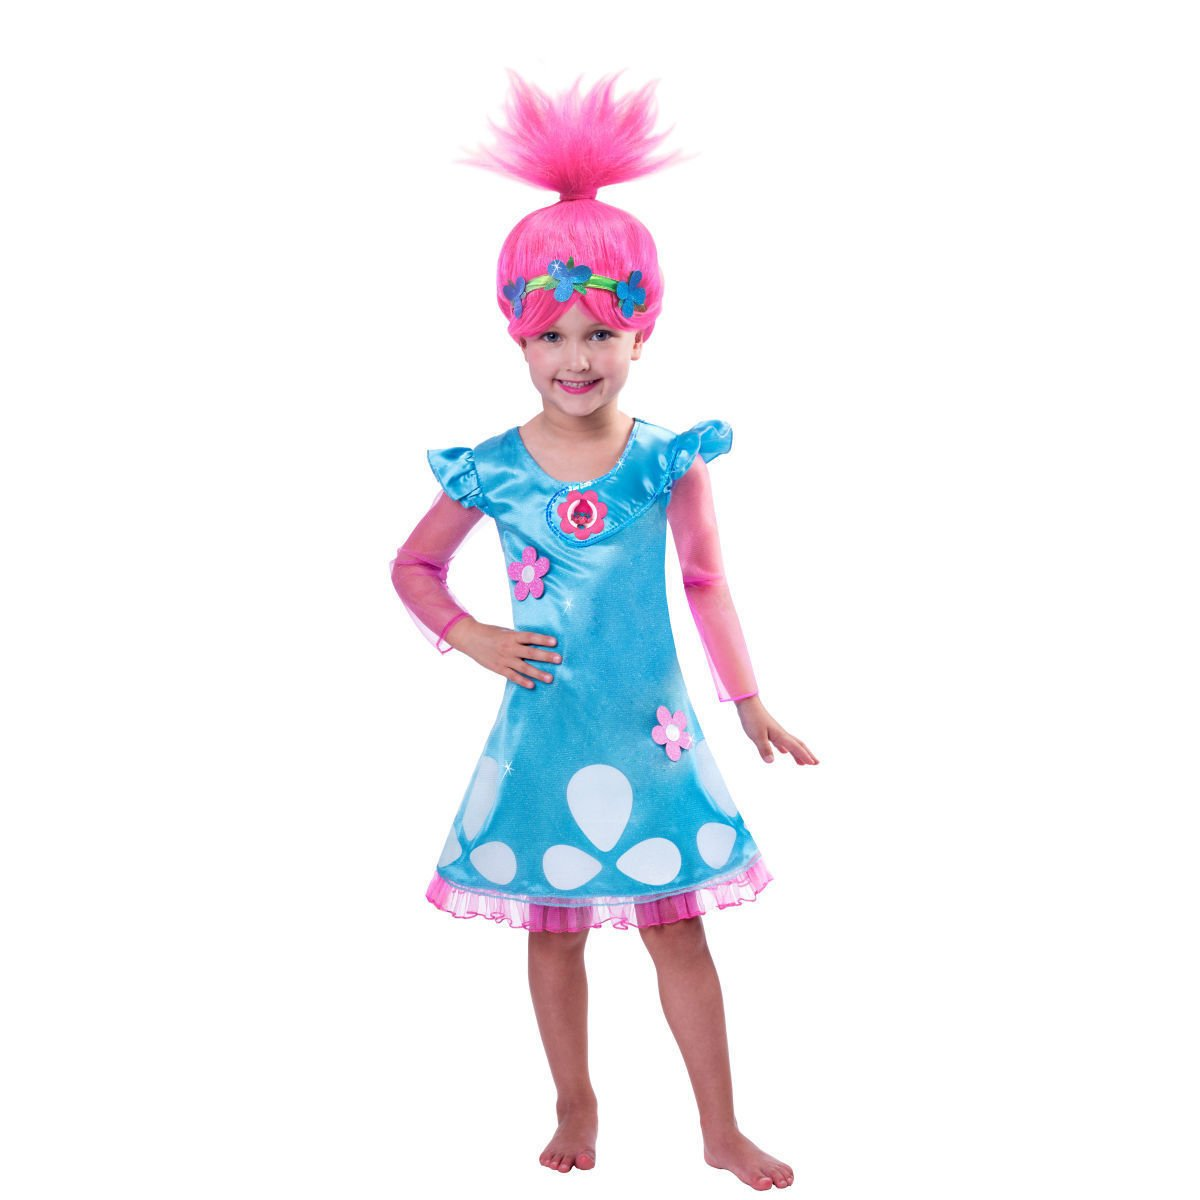 e629910d5ee Amazon.com  Trolls Costume GREATCHILDREN Trolls Poppy Cosplay Halloween  Clothing Clothes Kids Fancy Girl Dress Wig Necklace  Clothing